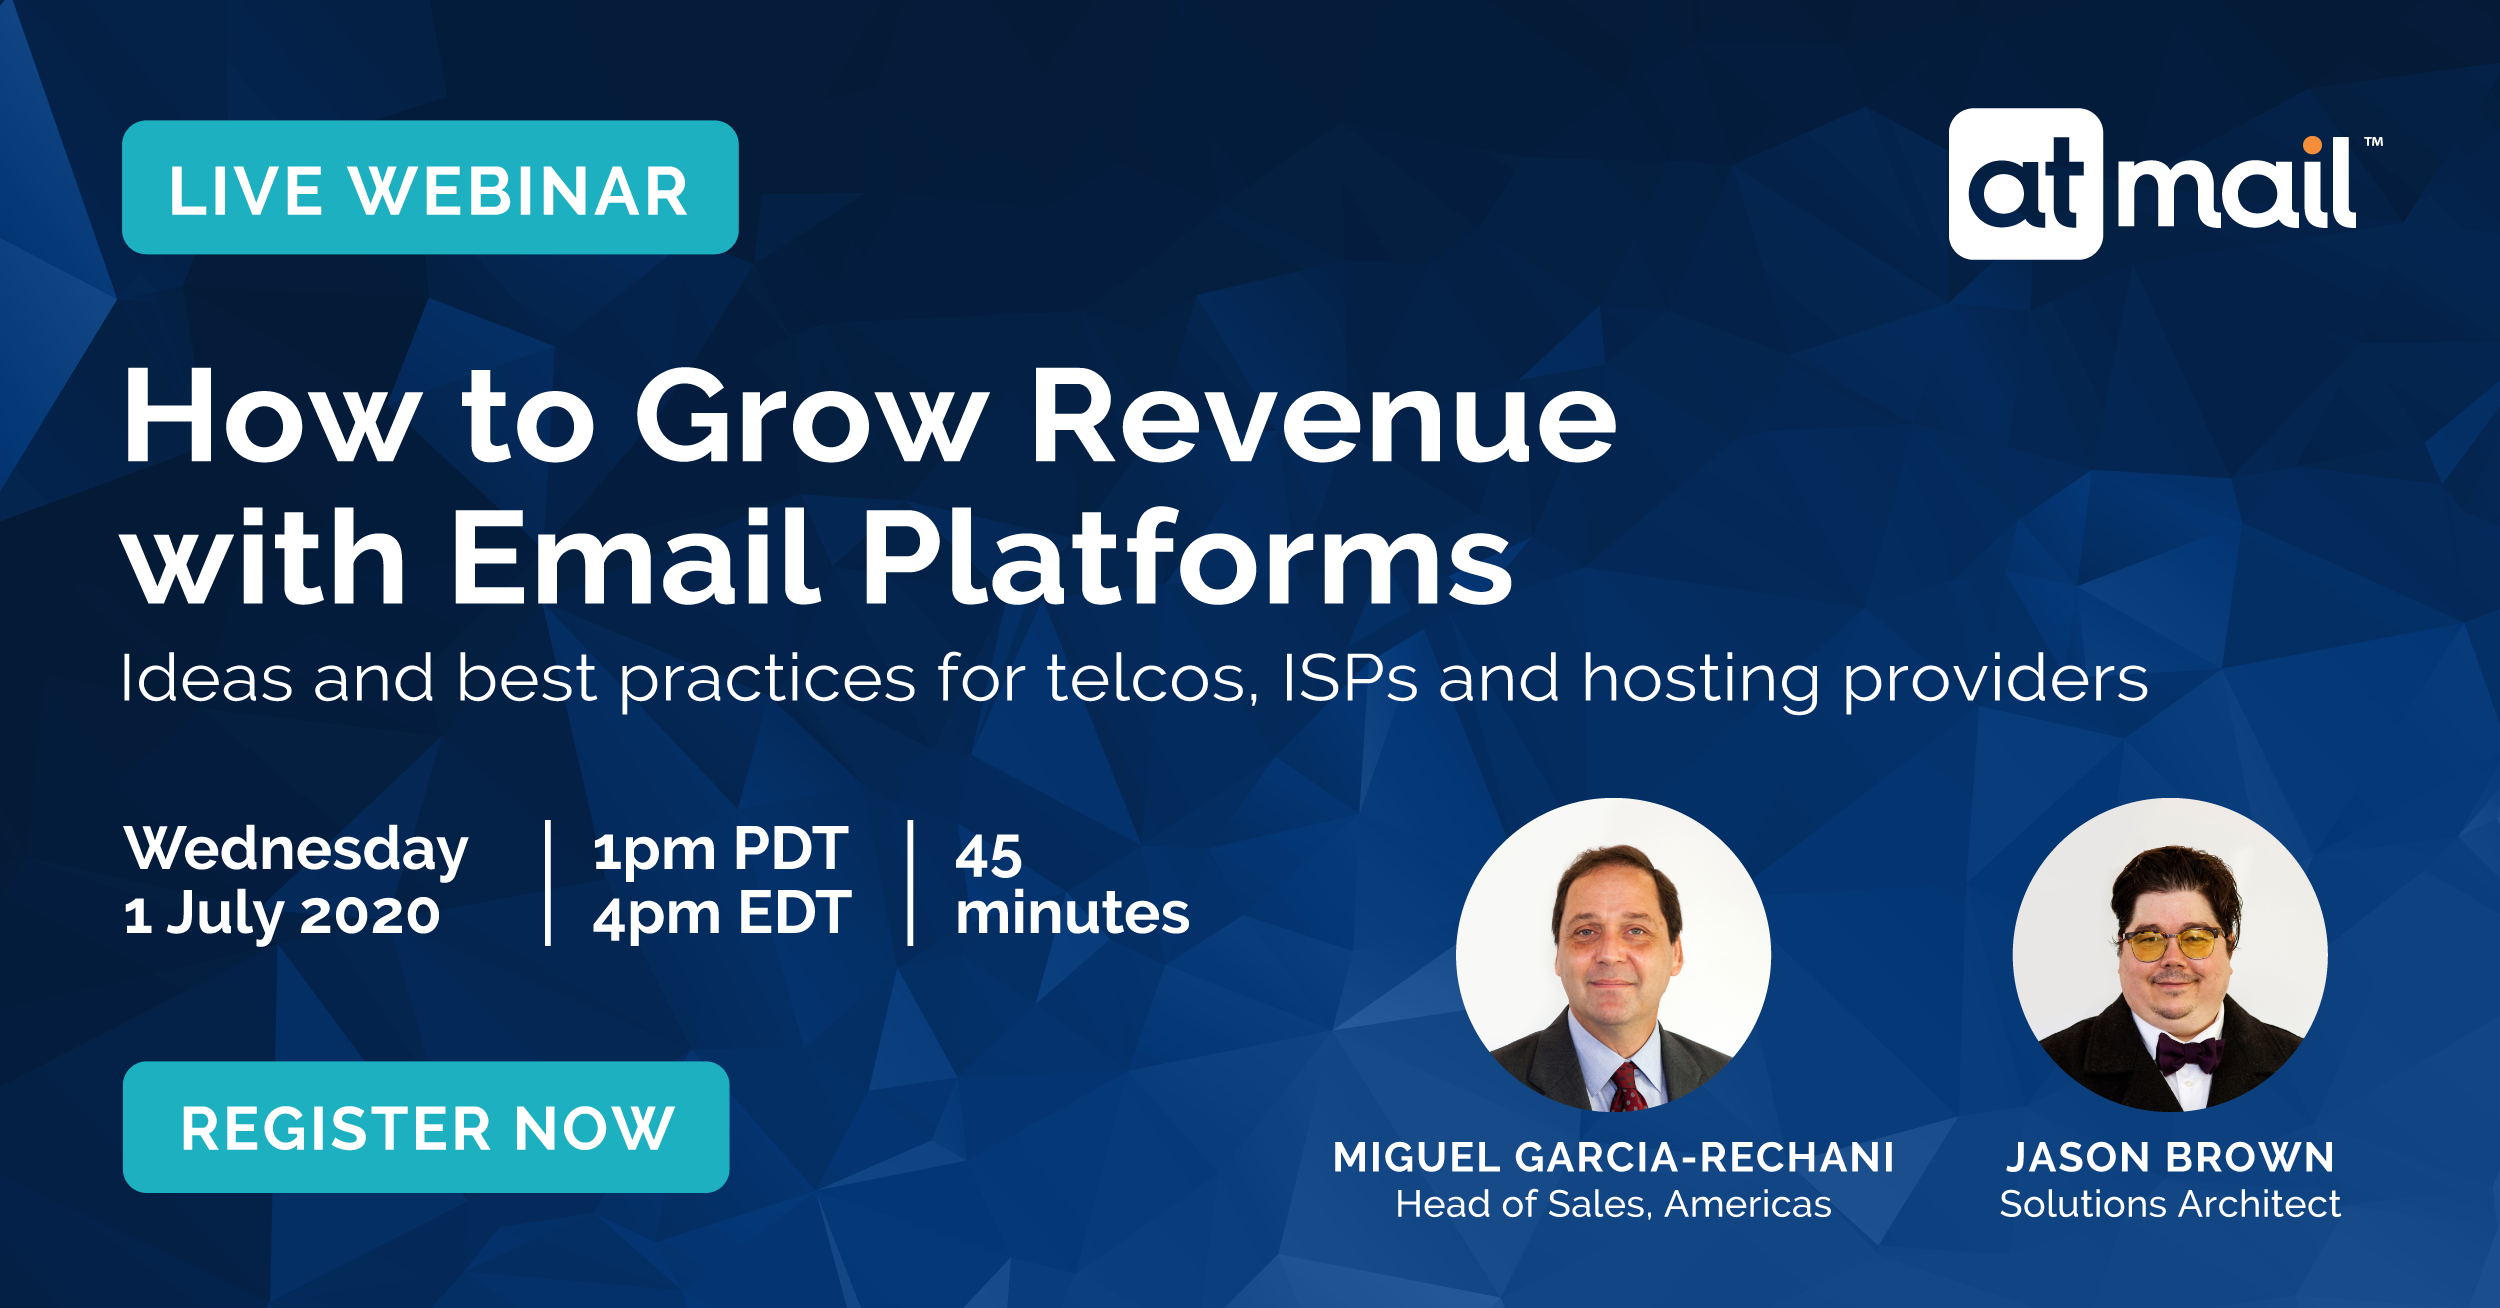 How to Grow Revenue with Email Platforms - Miguel Garcia - Jason Brown - atmail email experts - cloud email hosting for telcos, ISPs and hosting providers